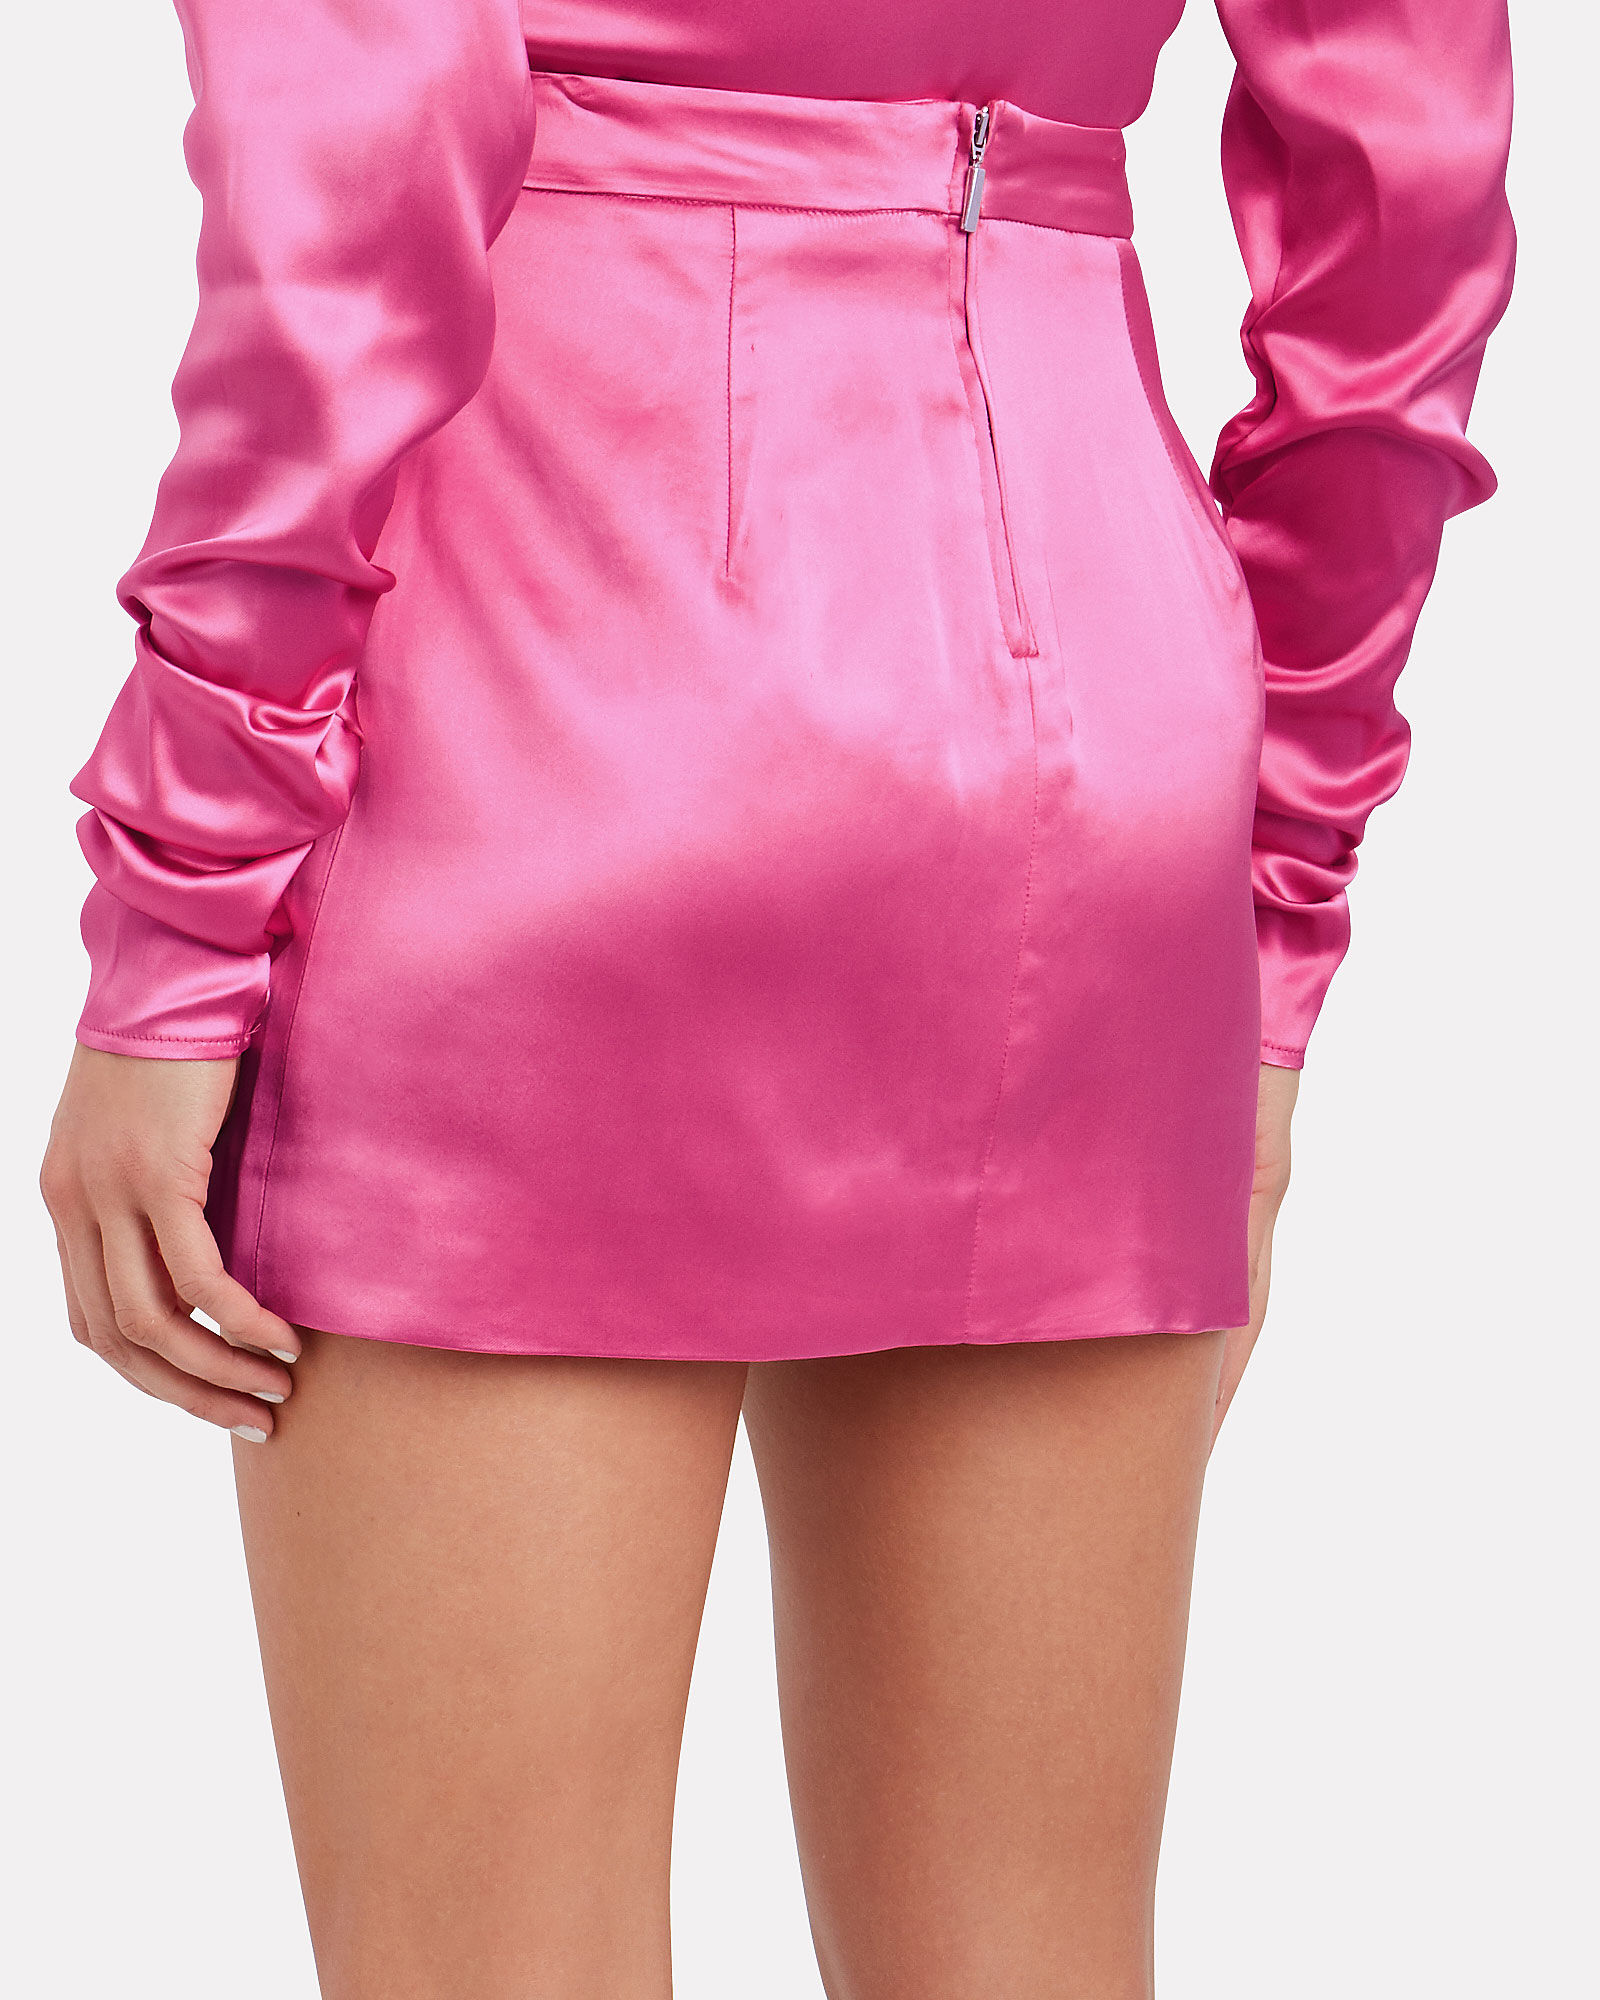 Tuscany Satin Mini Skirt, PINK, hi-res